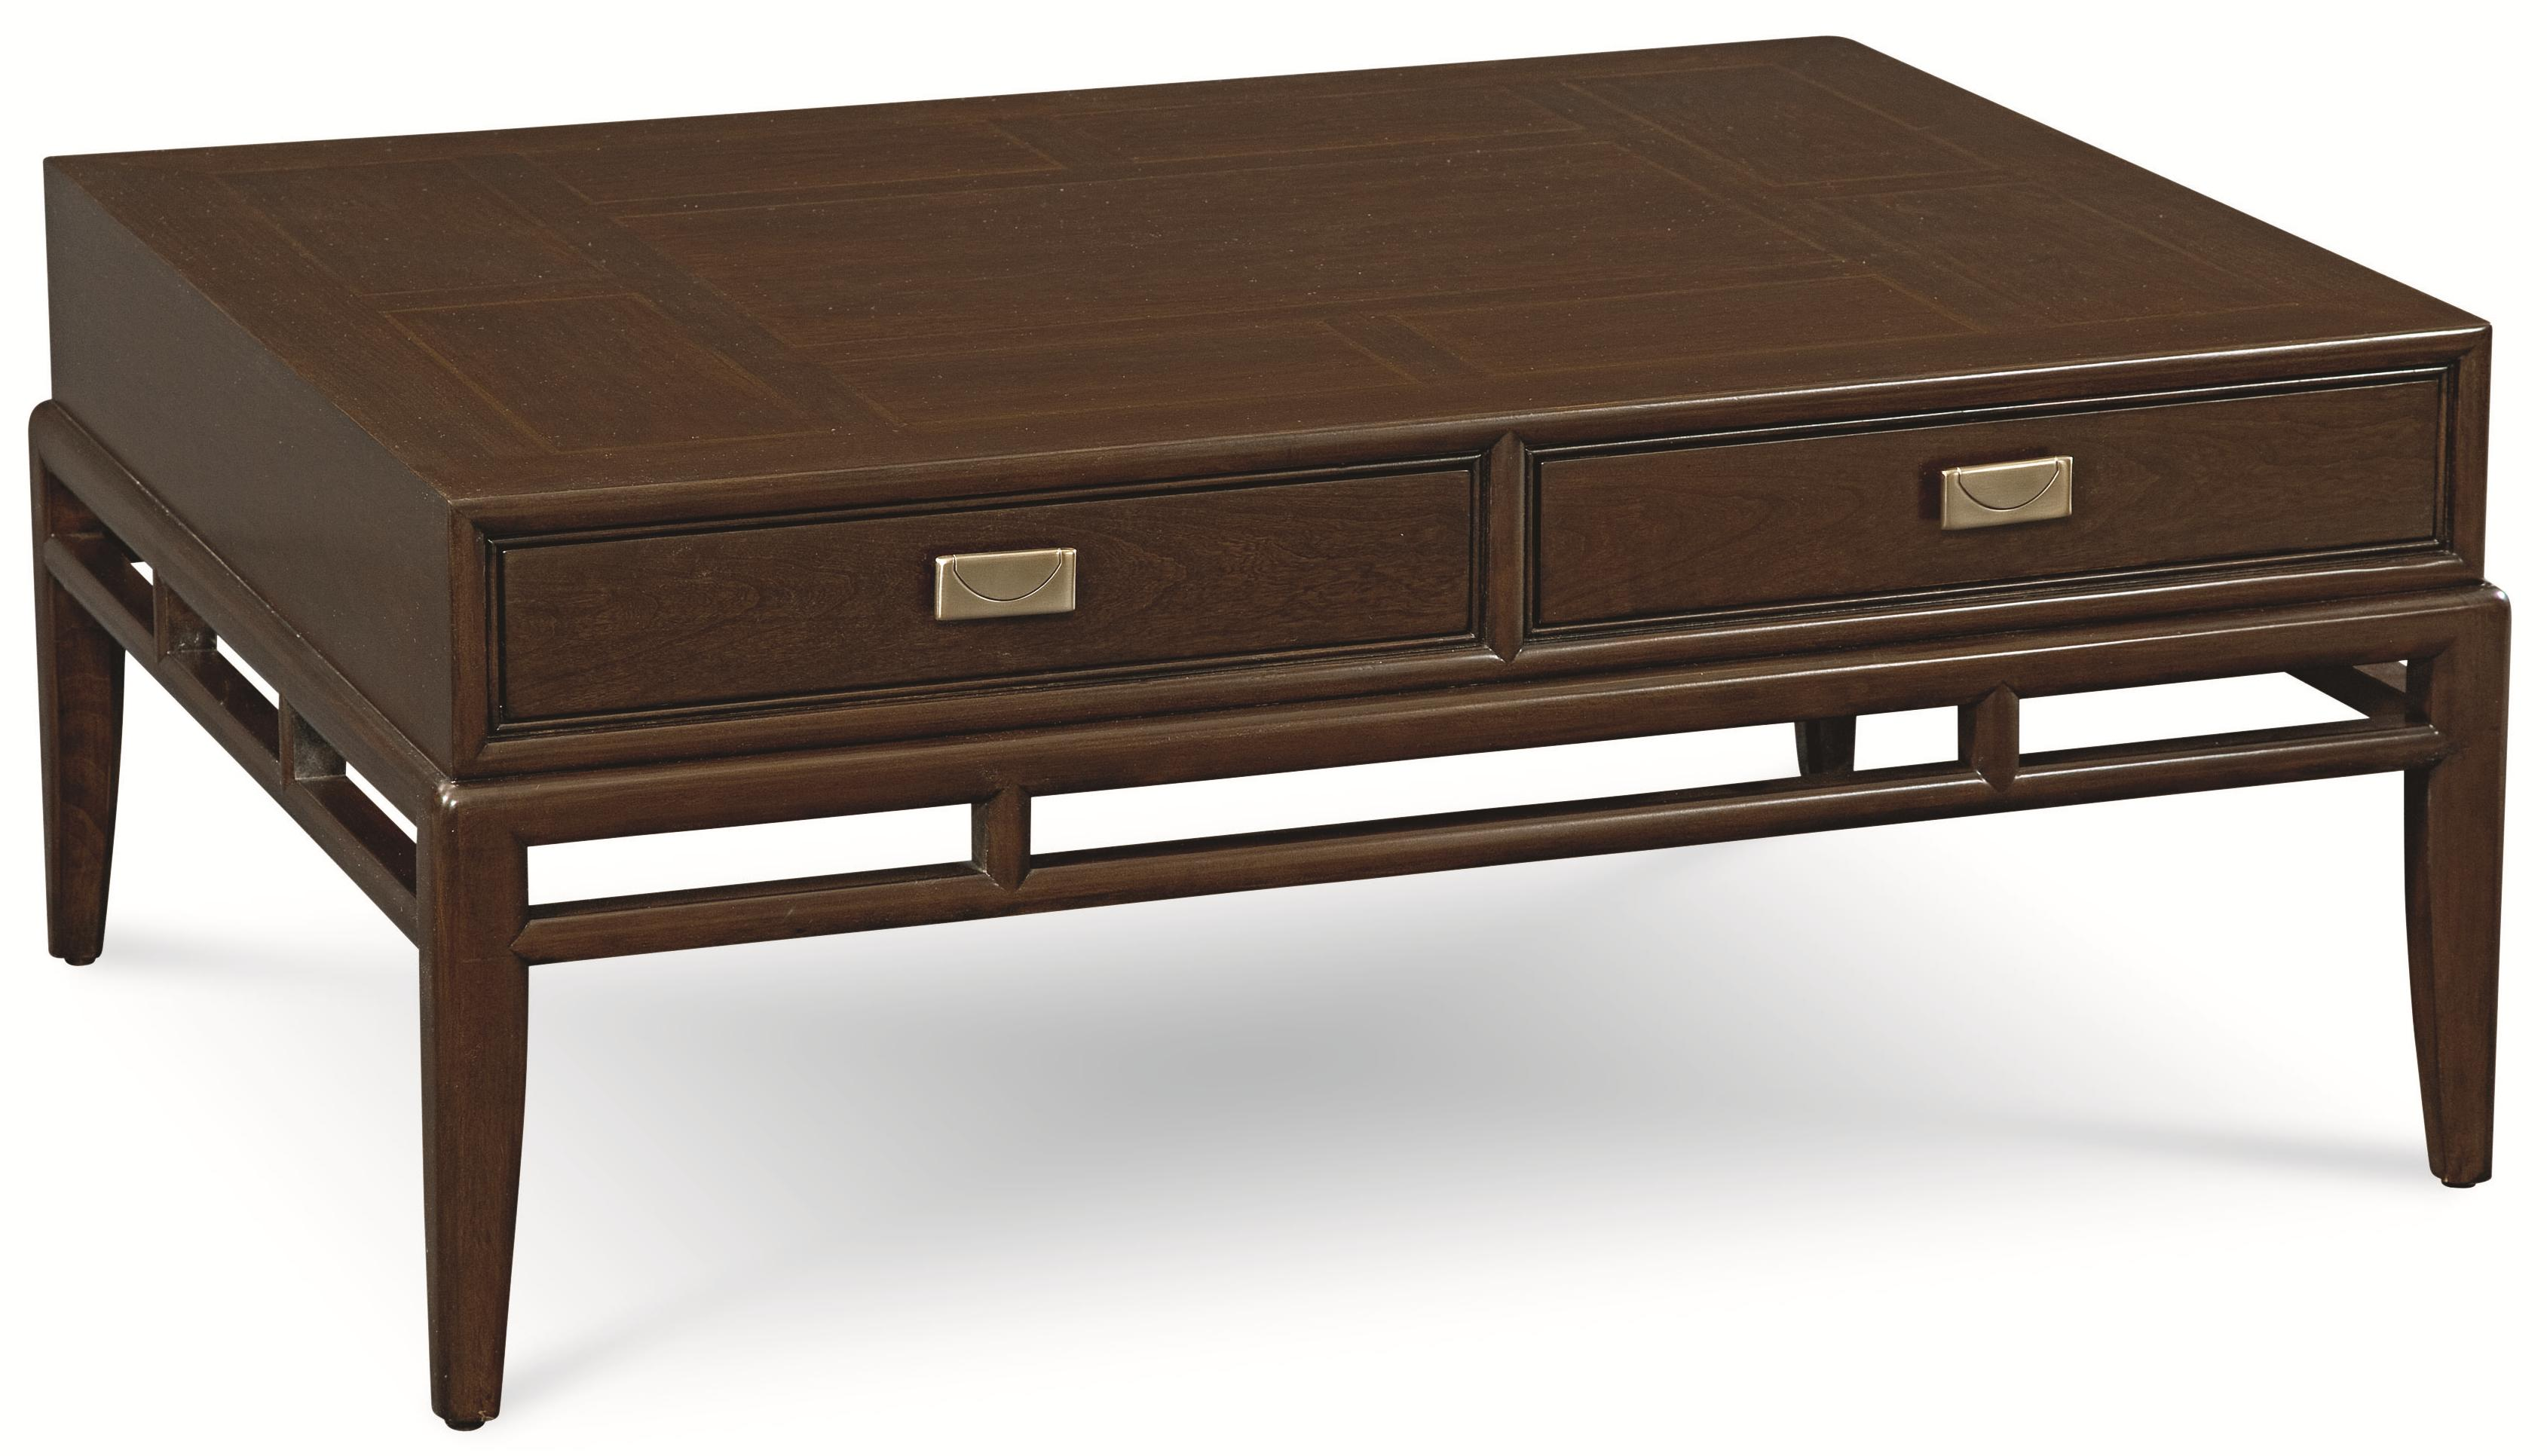 Thomasville Lantau 120 Rectangular Coffee Table w 2